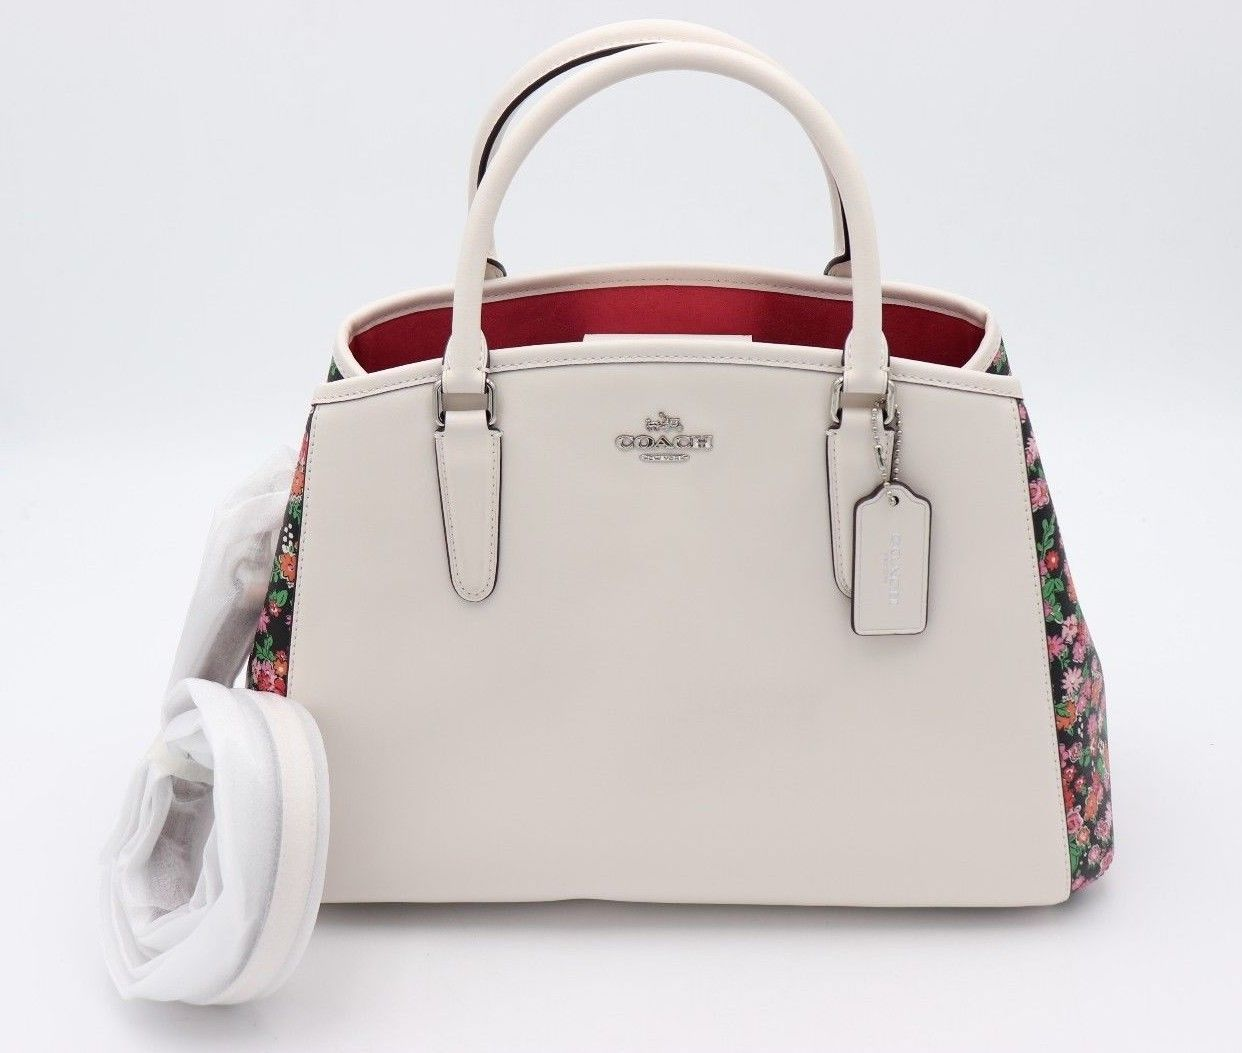 NWT Coach Margot Posey Cluster Floral Print Carryall Convertible Bag 57631 $425